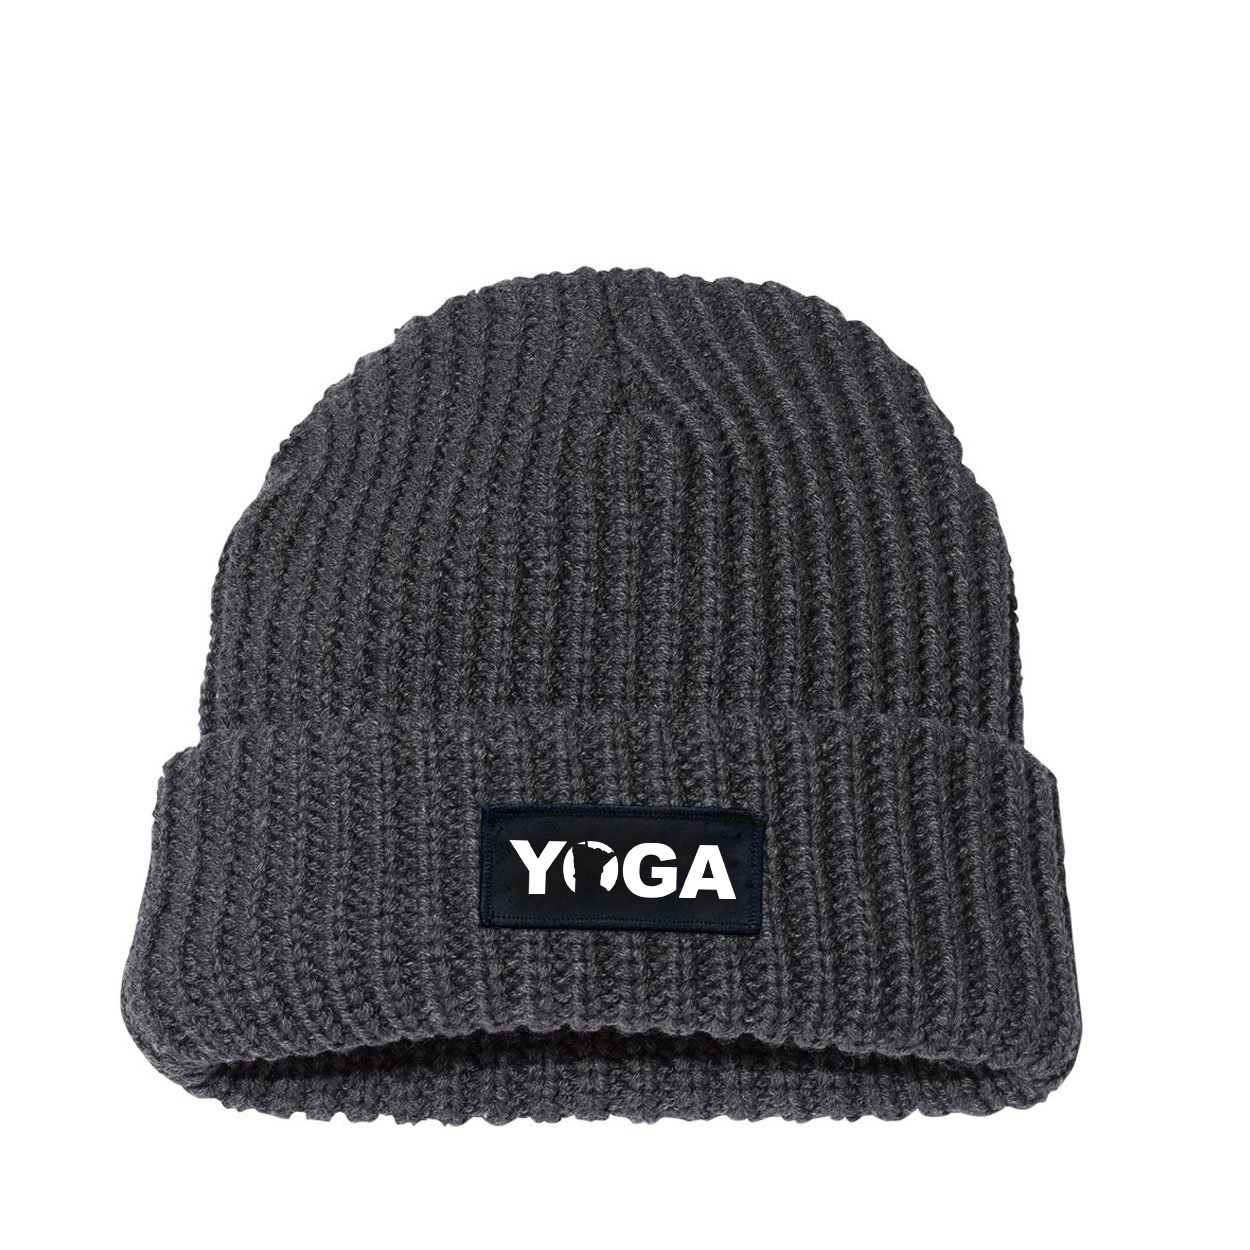 Yoga Minnesota Night Out Woven Patch Roll Up Jumbo Chunky Knit Beanie Charcoal (White Logo)